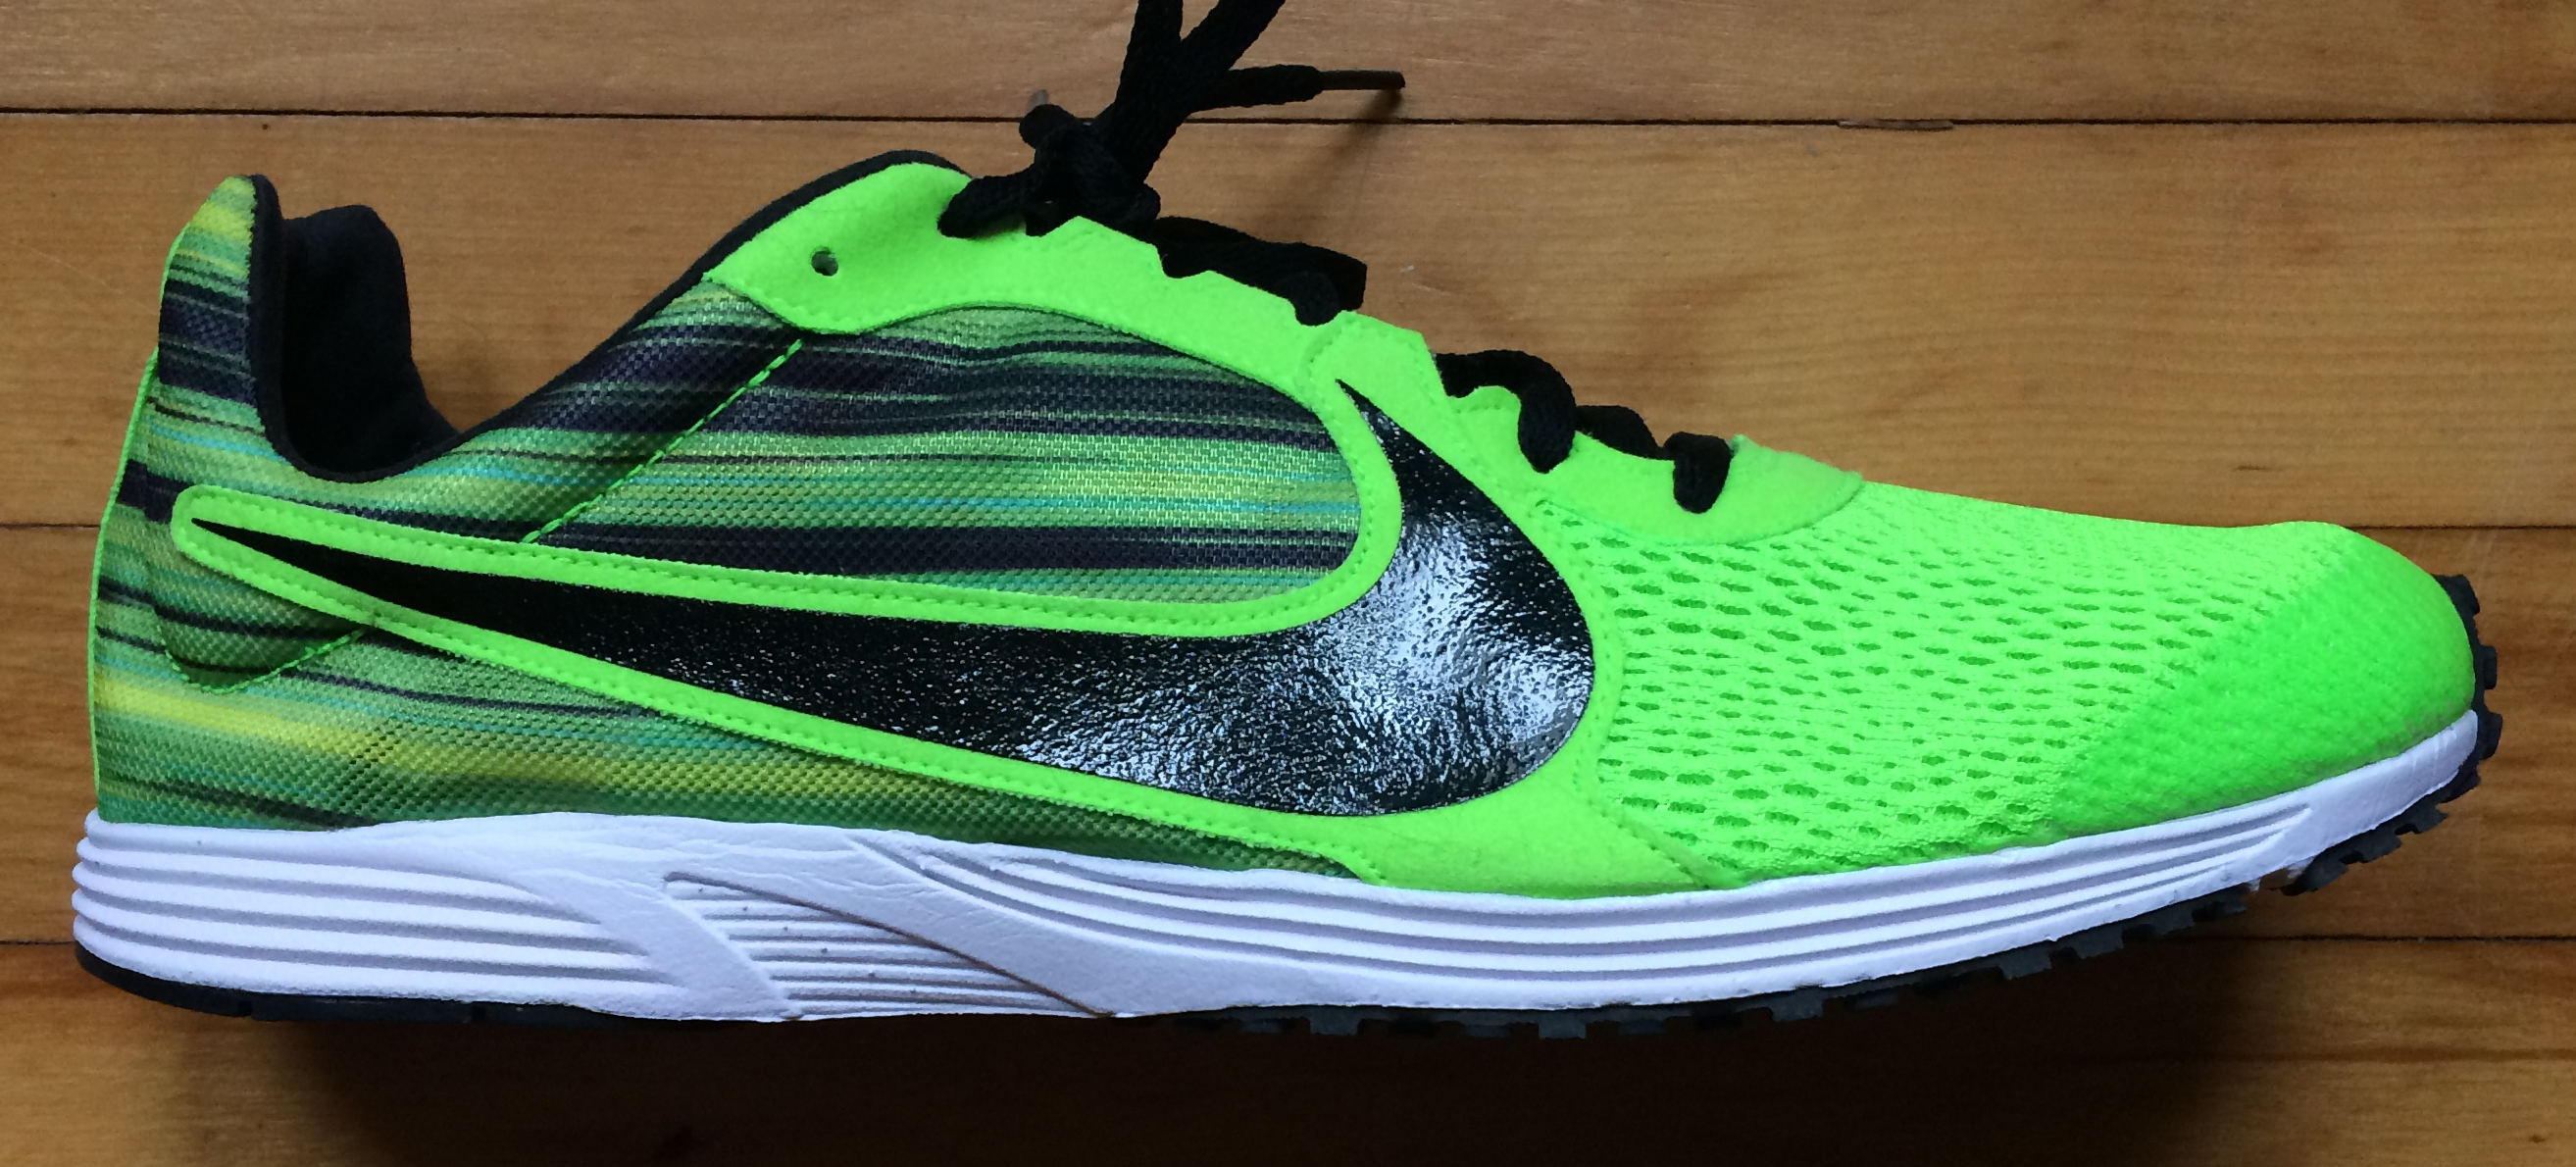 Nike Racing Shoes Review